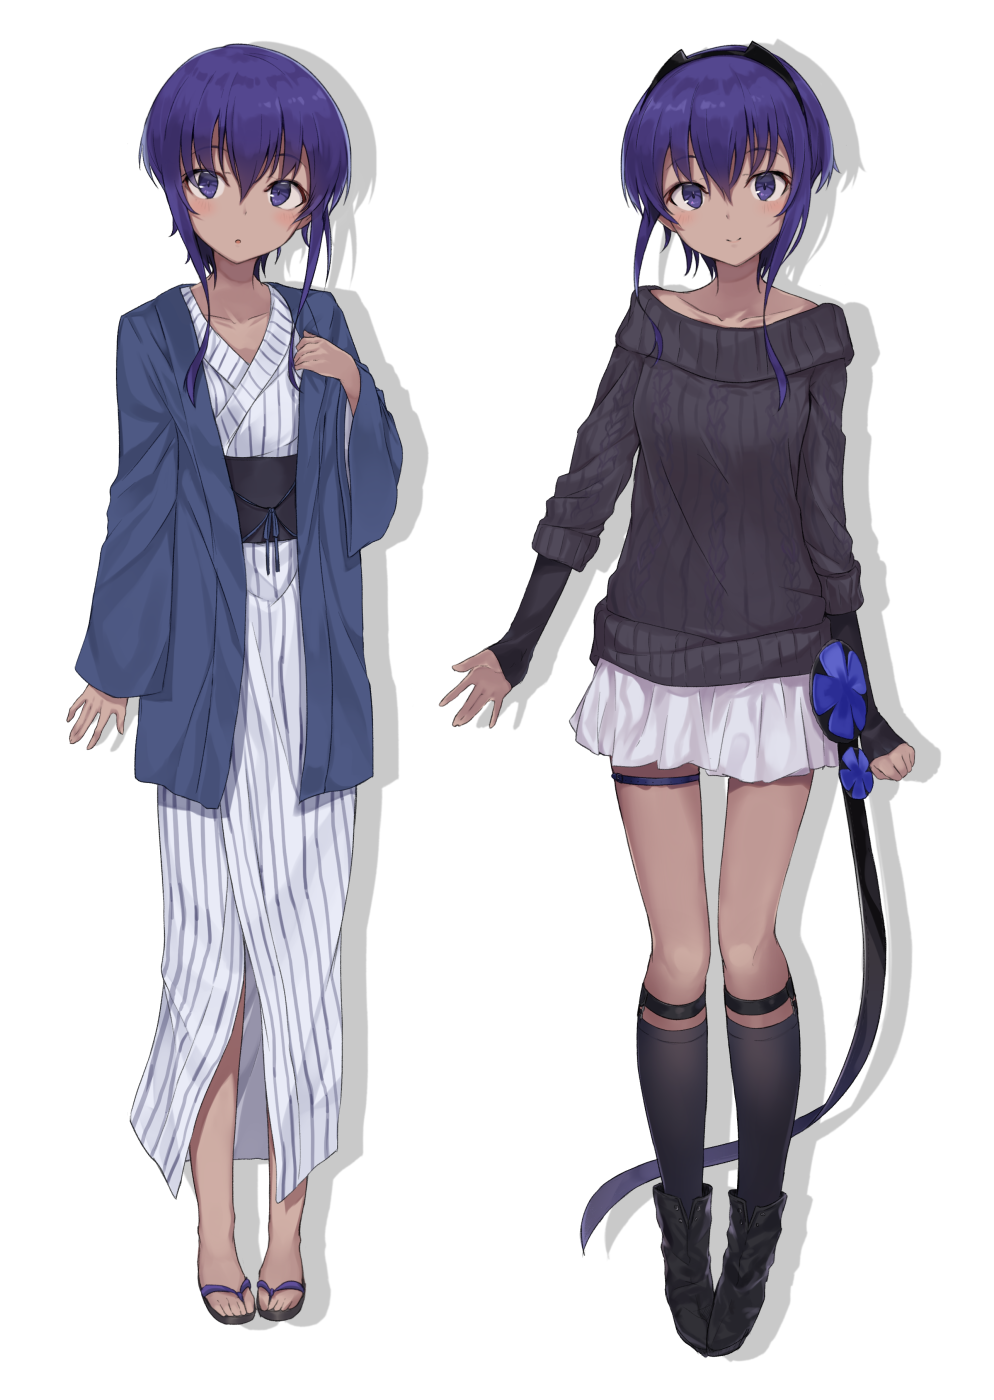 1girl :o ankle_boots arm_warmers arms_at_sides assassin_(fate/prototype_fragments) bangs black_footwear black_hairband black_legwear black_sweater blush boots casual closed_mouth collarbone dark_skin eyebrows_visible_through_hair fate/prototype fate/prototype:_fragments_of_blue_and_silver fate_(series) full_body hair_between_eyes hairband happi highres jacket japanese_clothes kimono kneehighs looking_at_viewer miniskirt monobe_tsukuri multiple_views open_clothes open_jacket parted_lips purple_hair ribbed_sweater sandals sash short_hair_with_long_locks sidelocks simple_background skirt smile standing striped sweater thigh_strap vertical-striped_kimono vertical_stripes violet_eyes white_background white_kimono white_skirt yukata